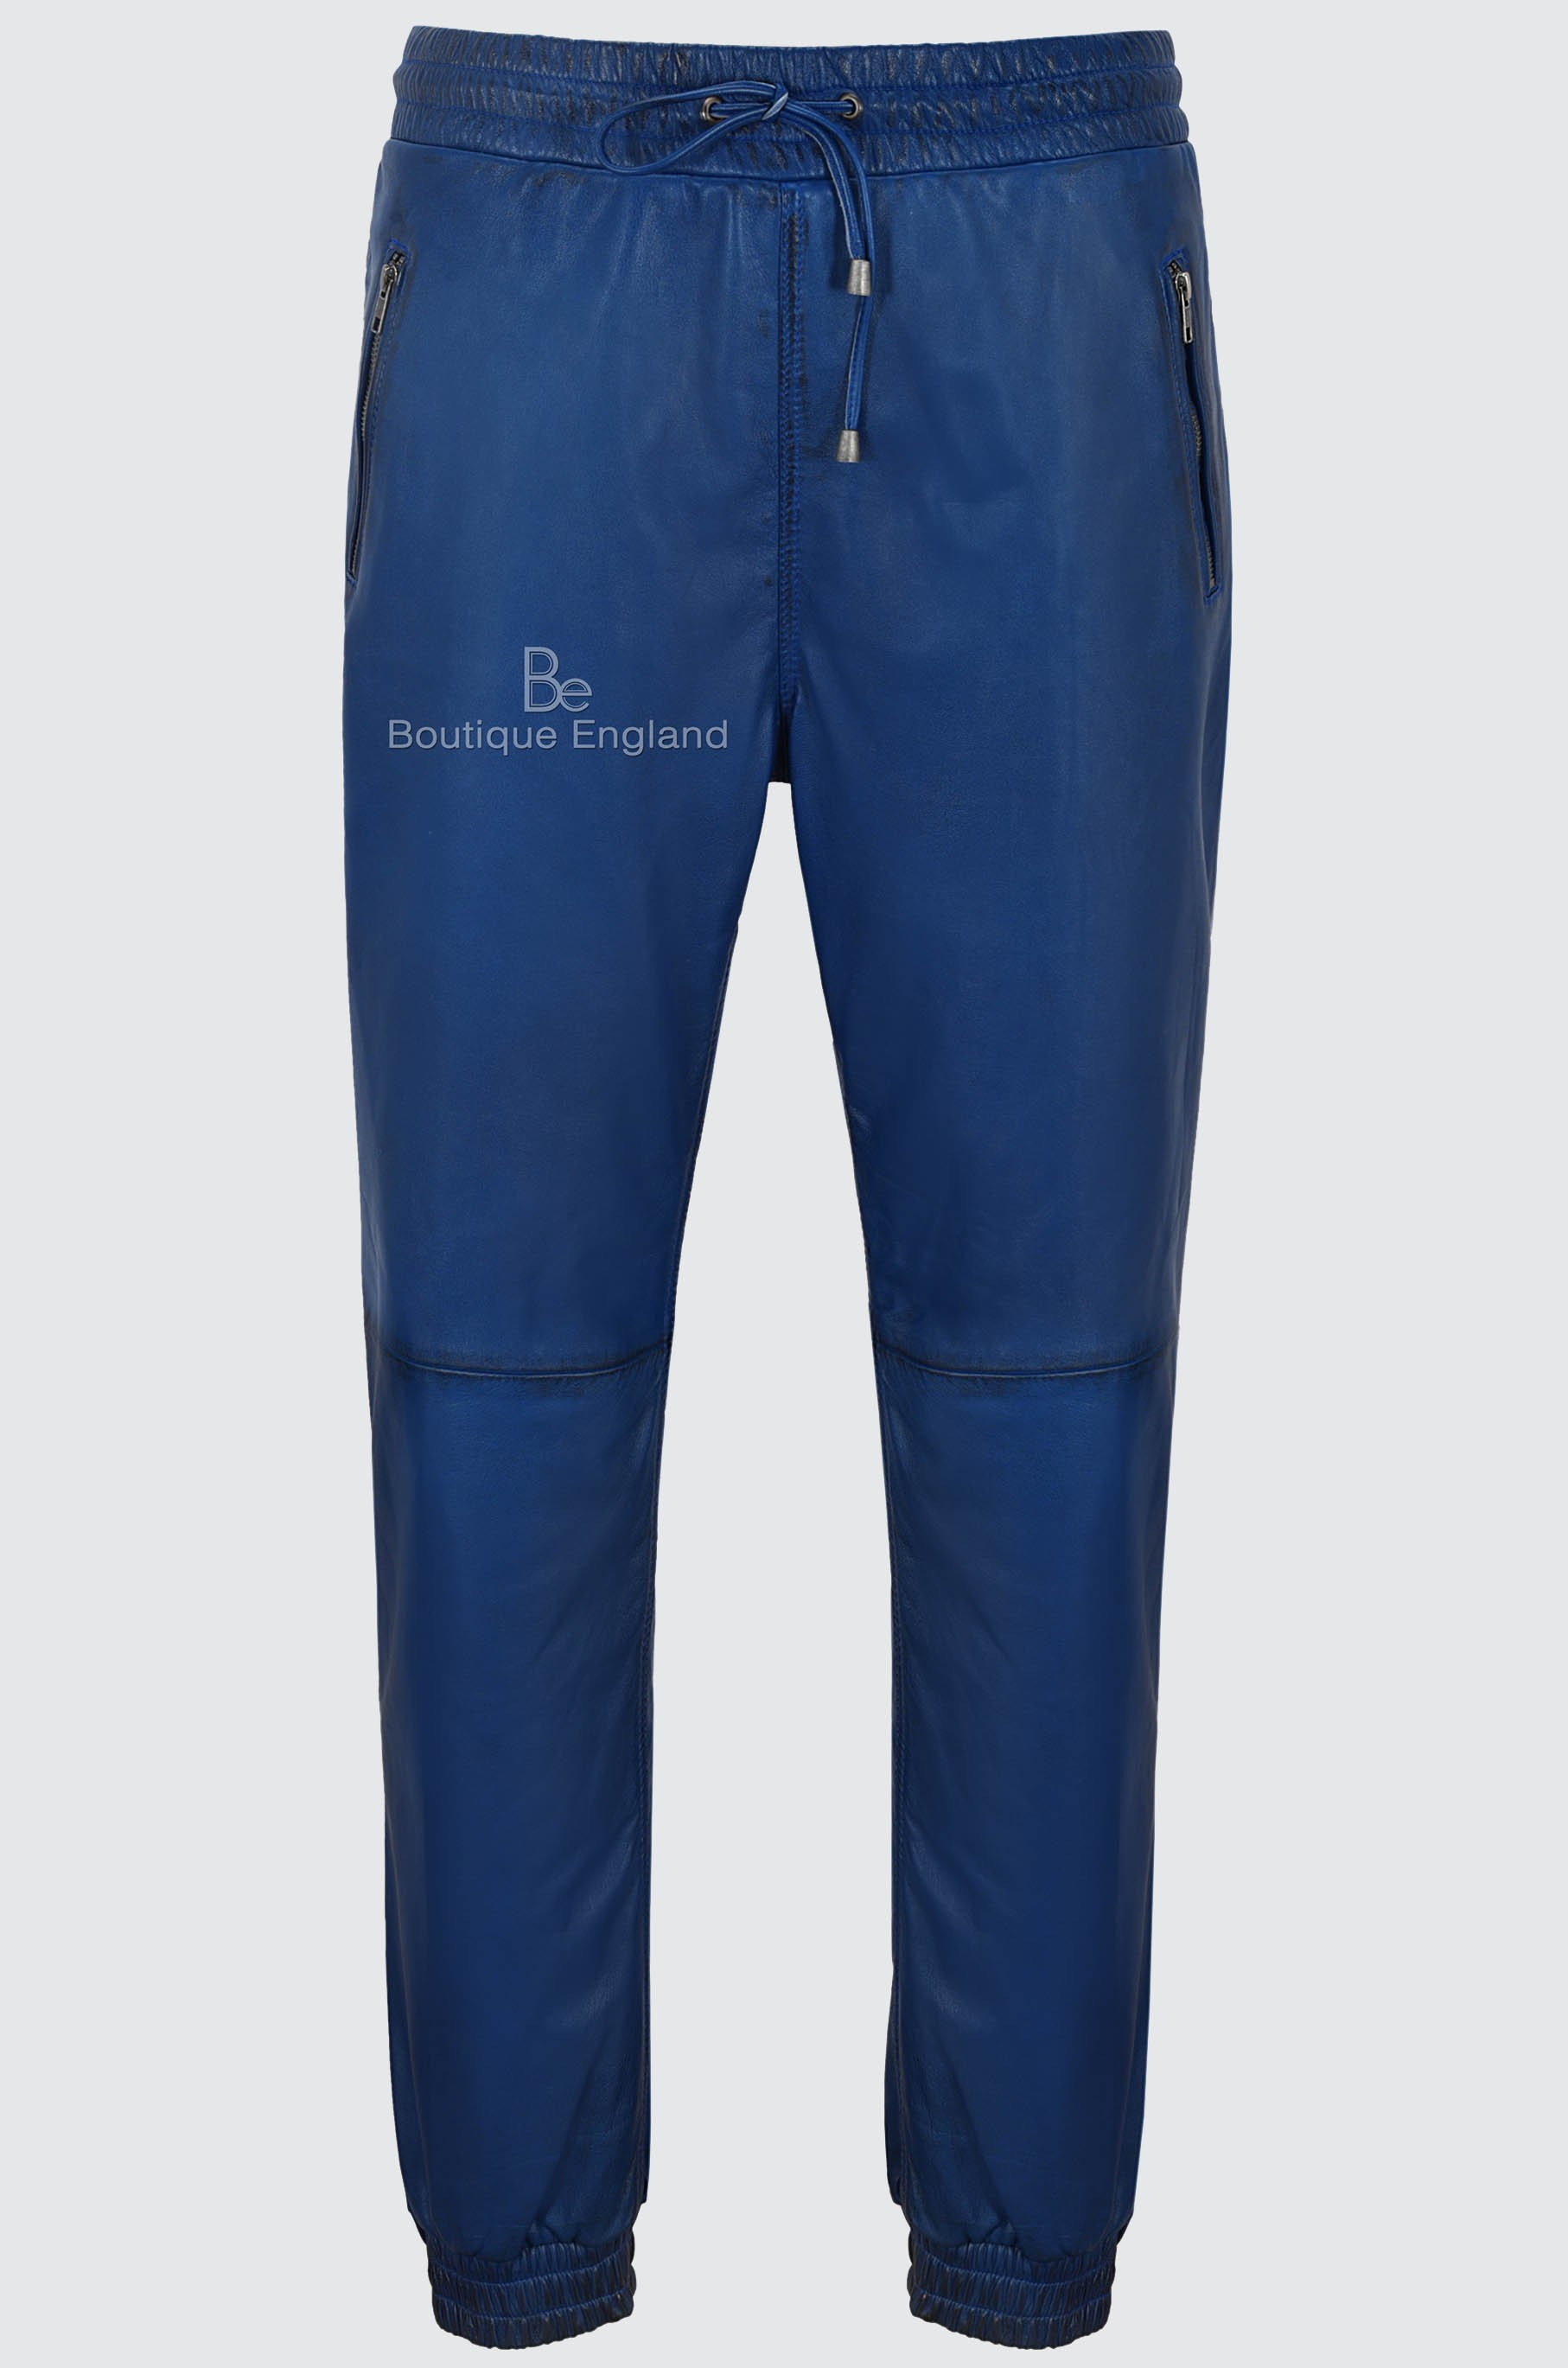 Men's Real Leather Trousers Blue Napa Sweat Track Pant Zip Jogging Bottom 3040